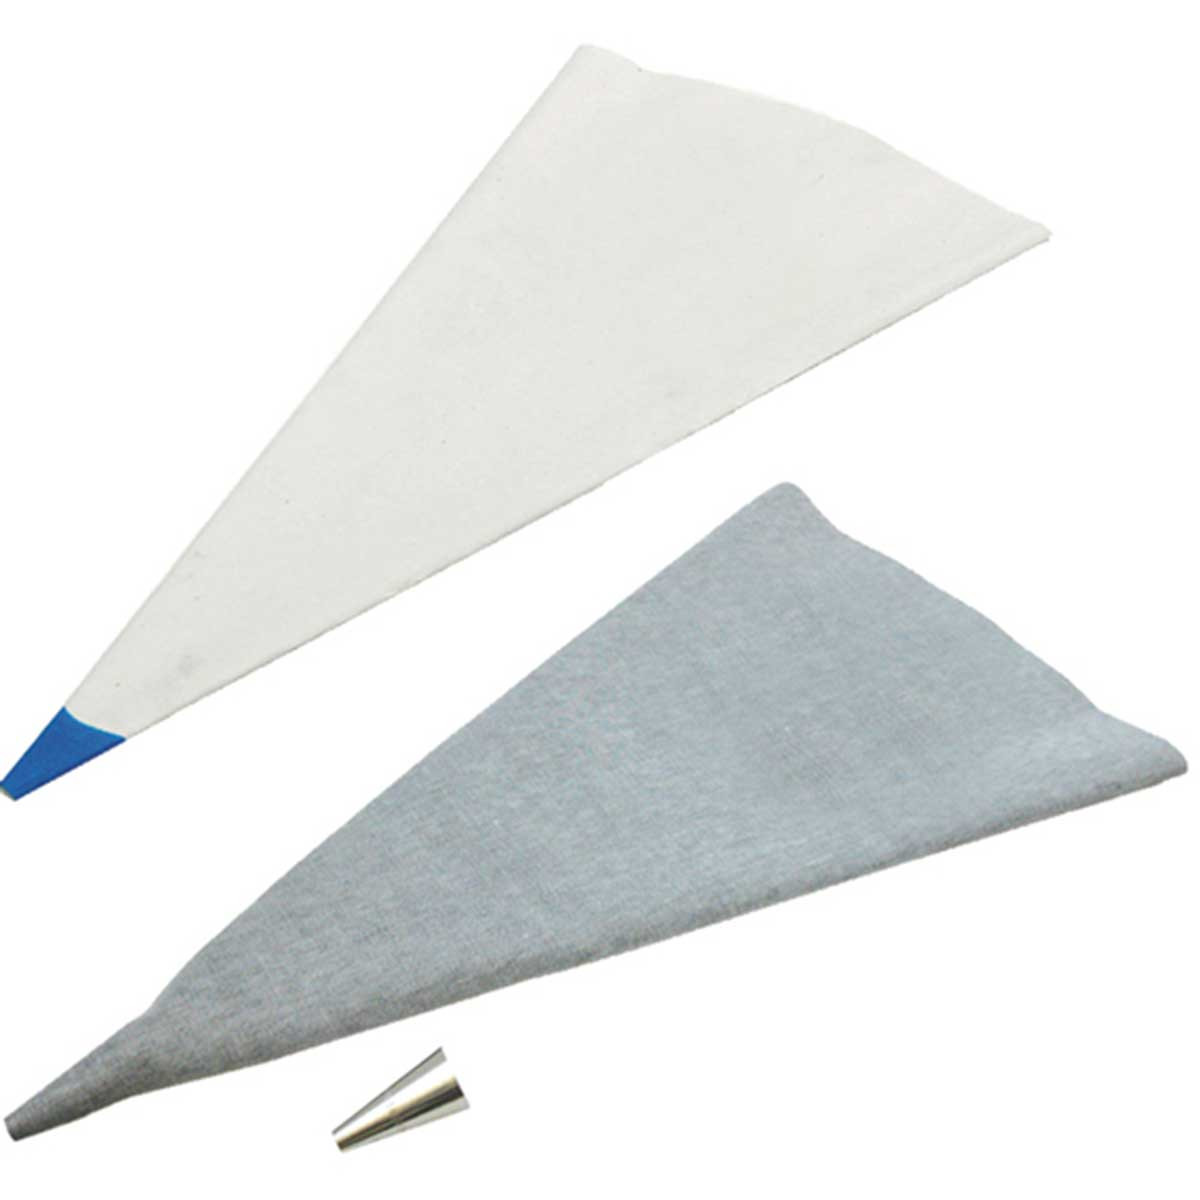 Mortar & Grout Bags